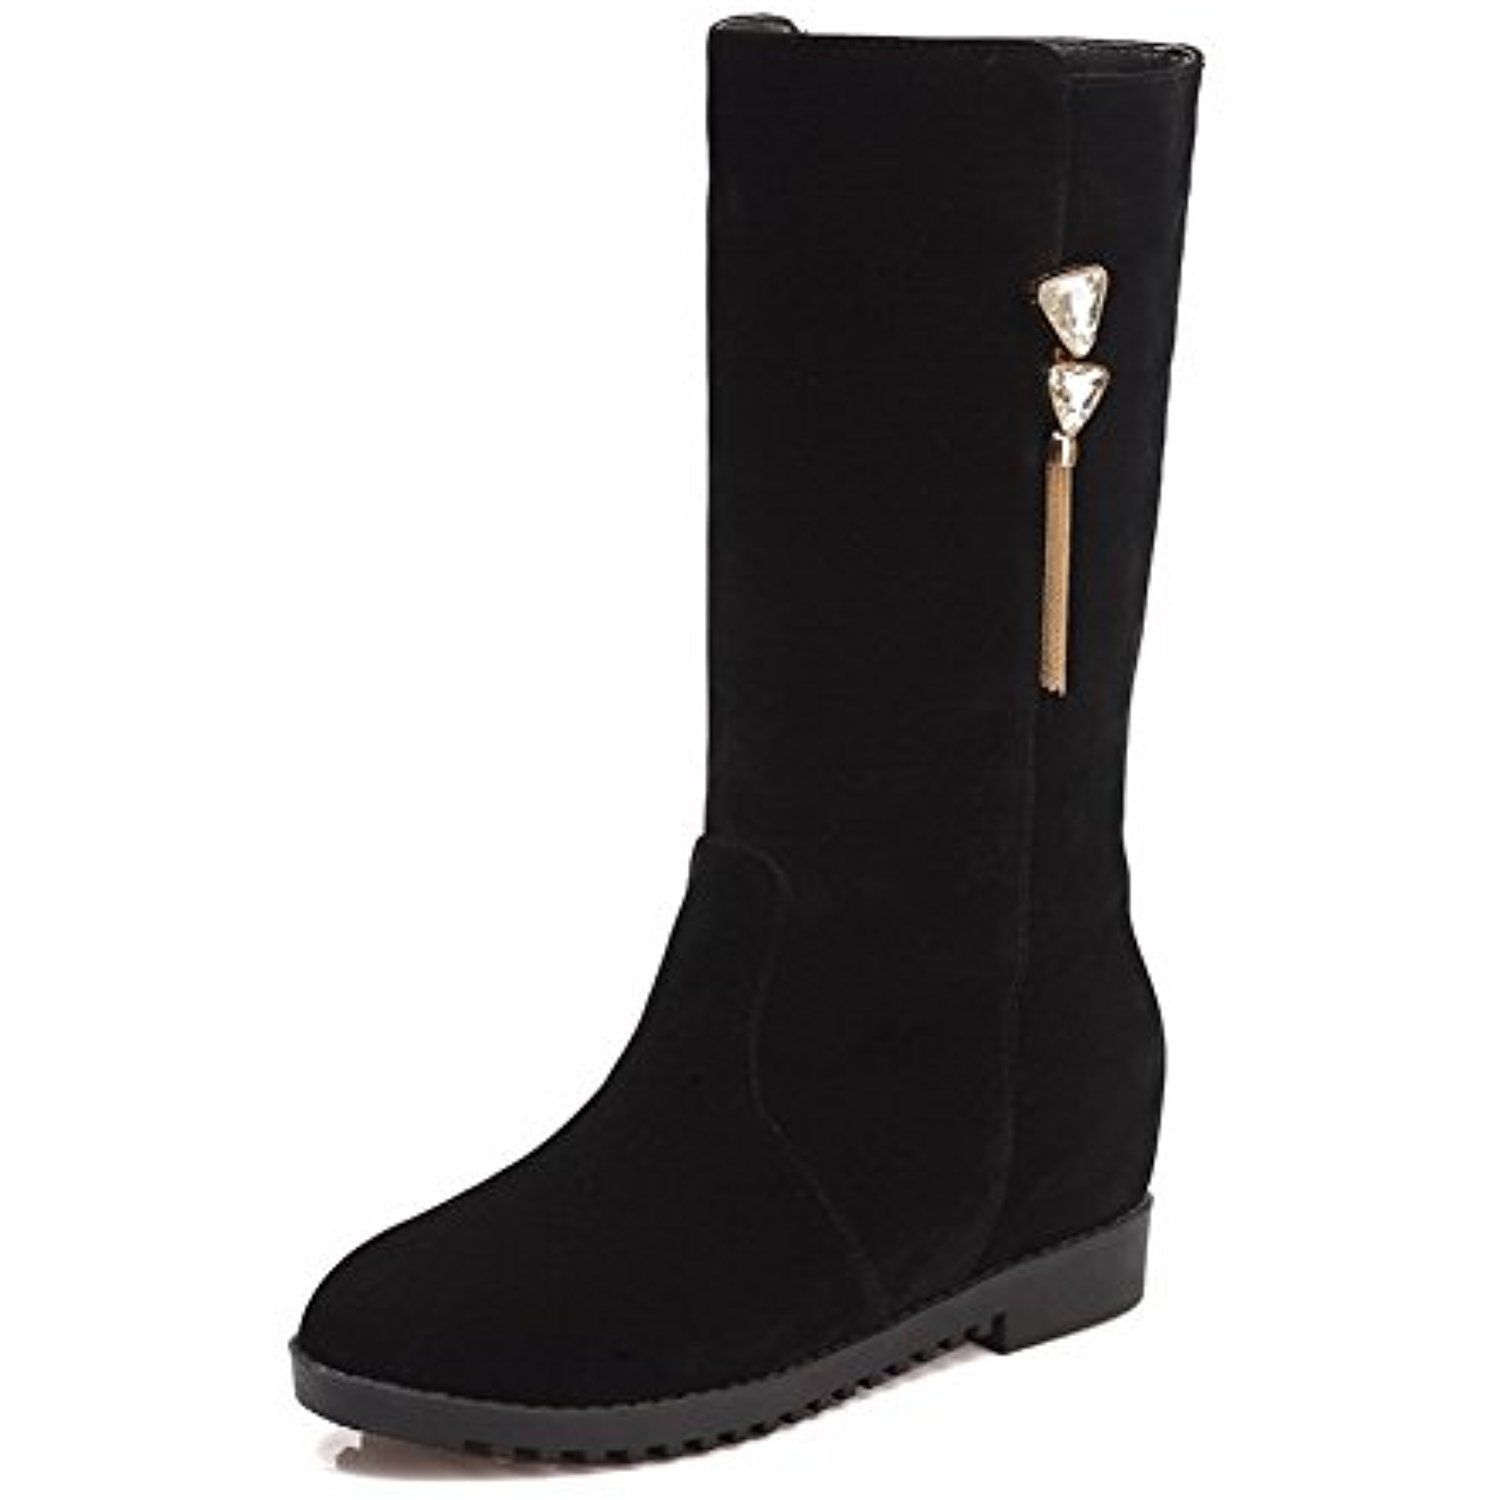 Women S Frosted Round Closed Toe Solid Mid Top Kitten Heels Boots Details Can Be Found By Clicking On The Image Kitten Heel Boots Kitten Heels Over The Knee